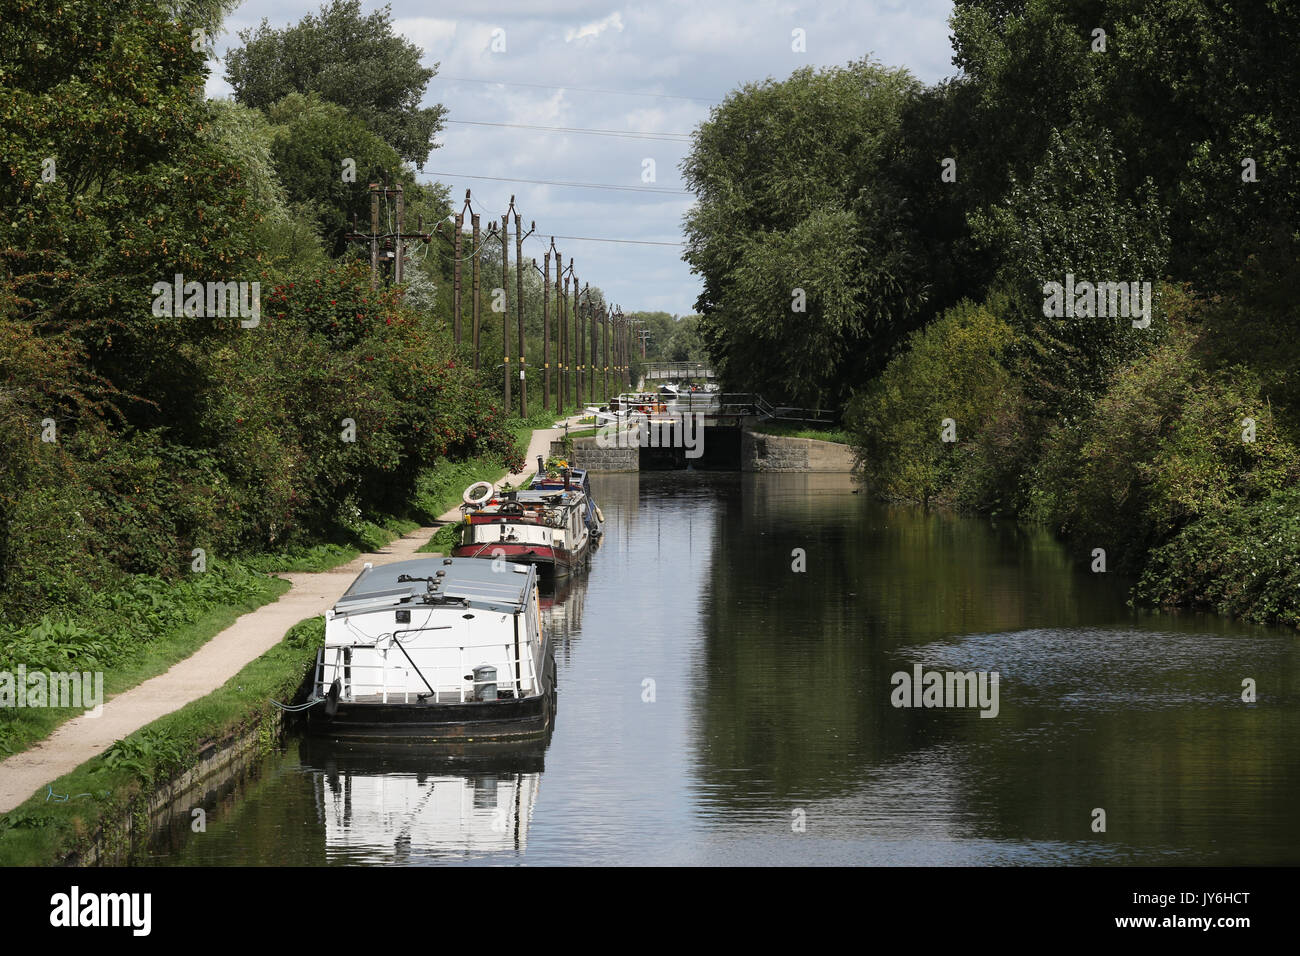 Summer scene at Cheshunt Lock on the River Lee Navigation in England. - Stock Image